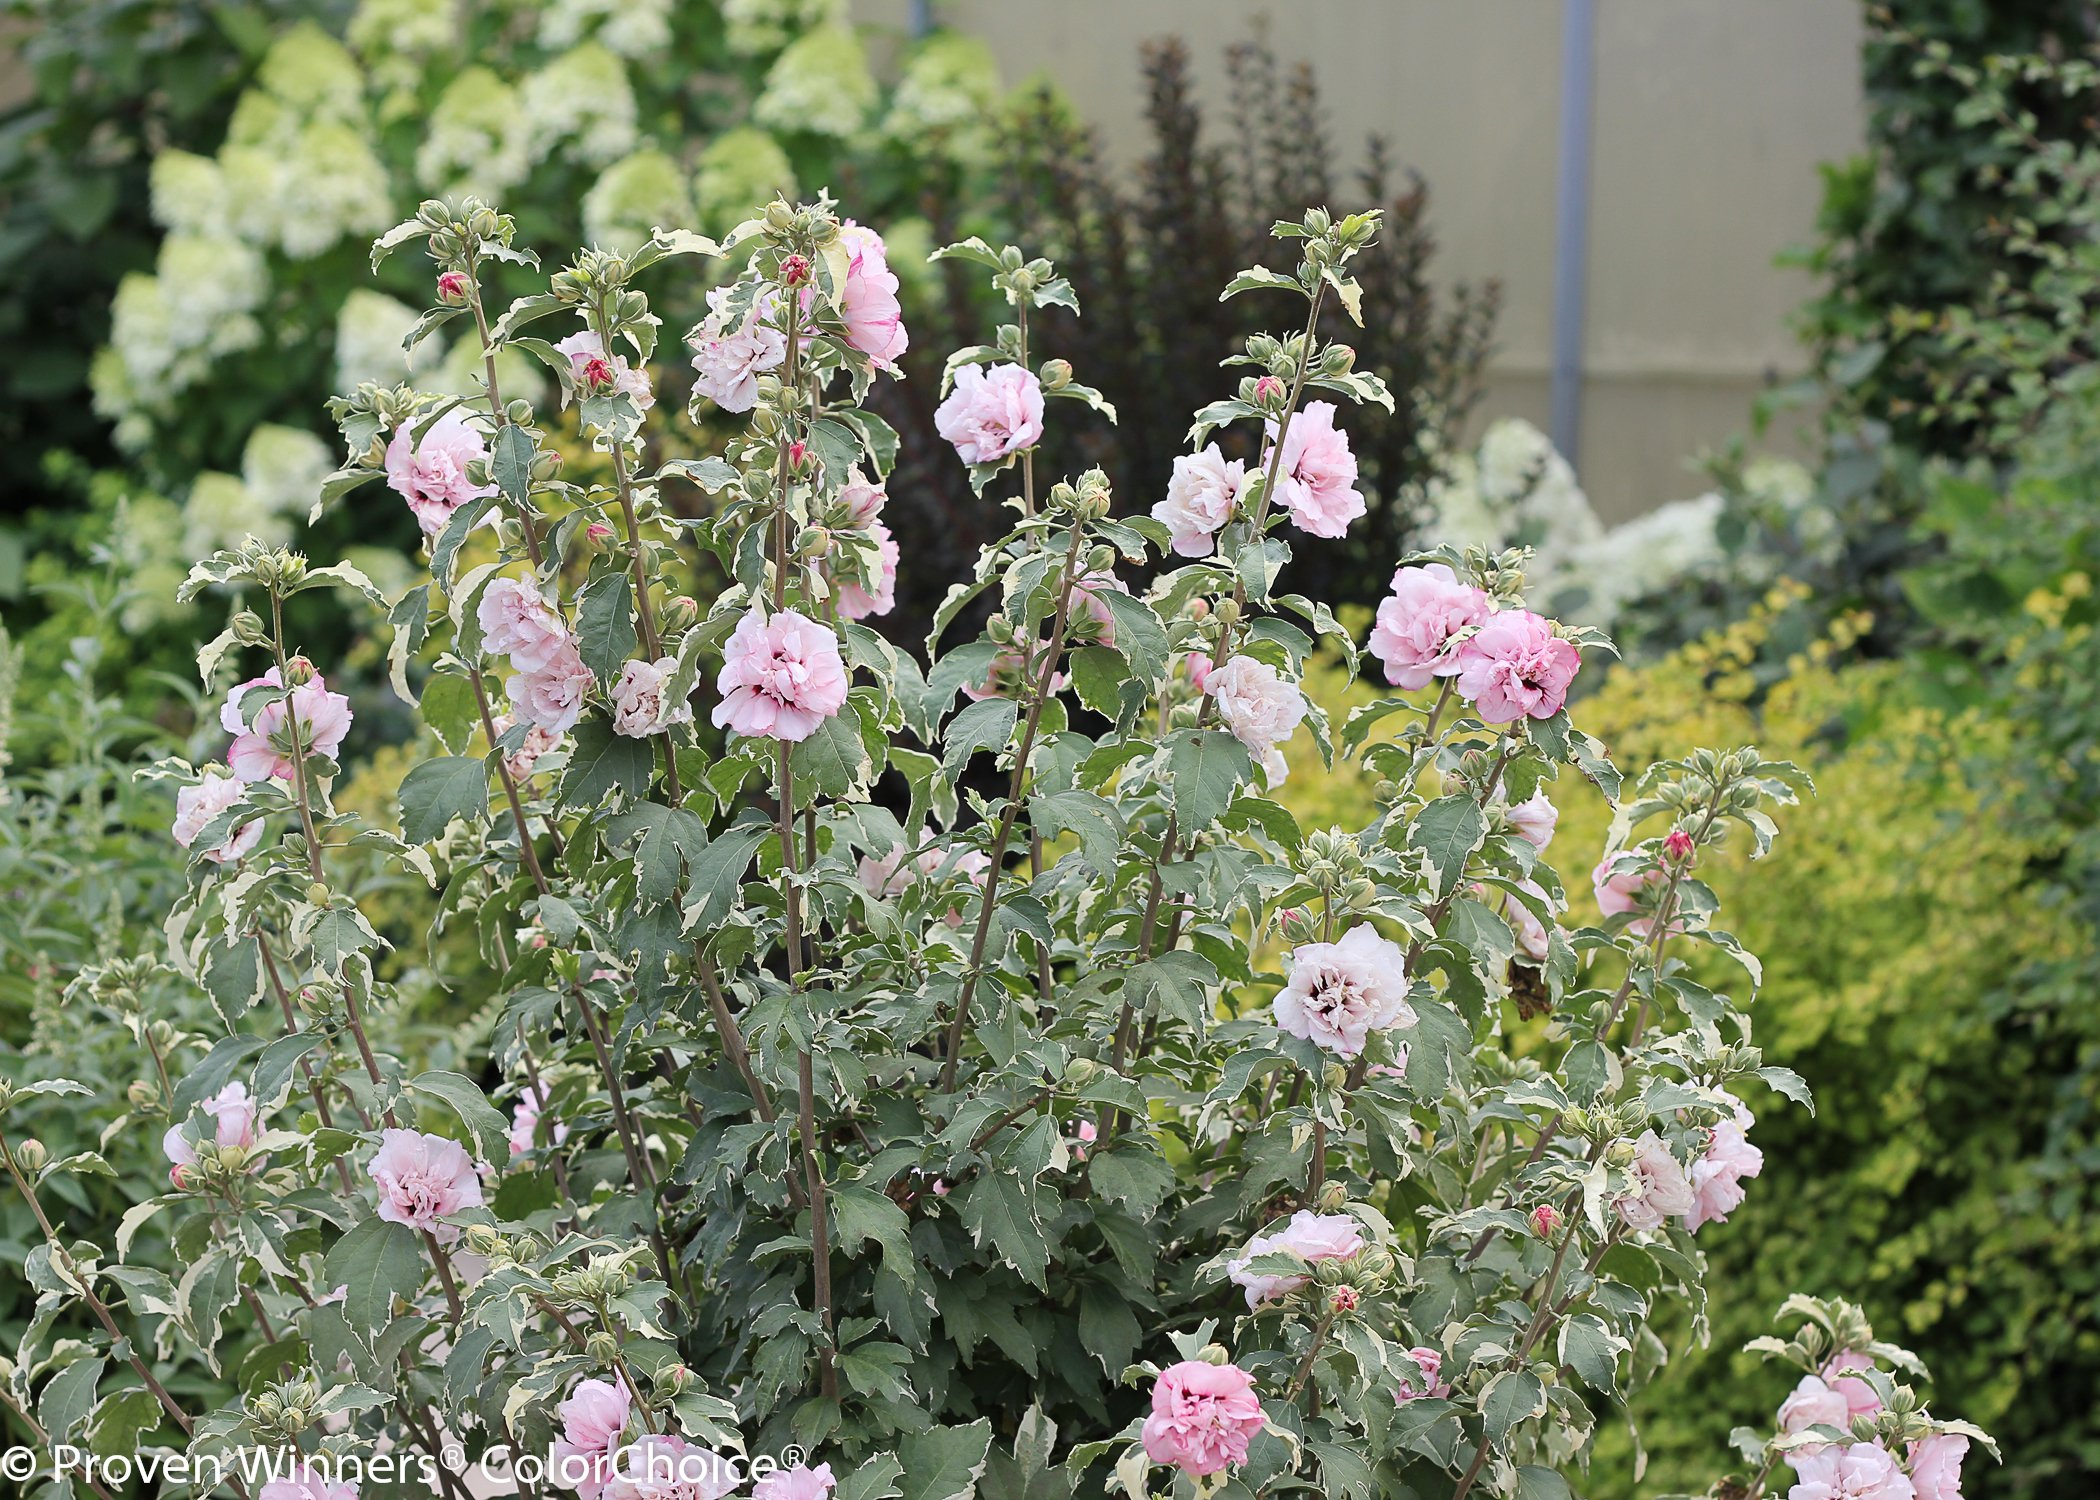 Sugar Tip Rose of Sharon (Hibiscus) Live Shrub, Light Pink Flowers and Variegated Foliage, 1 Gallon by Proven Winners (Image #8)